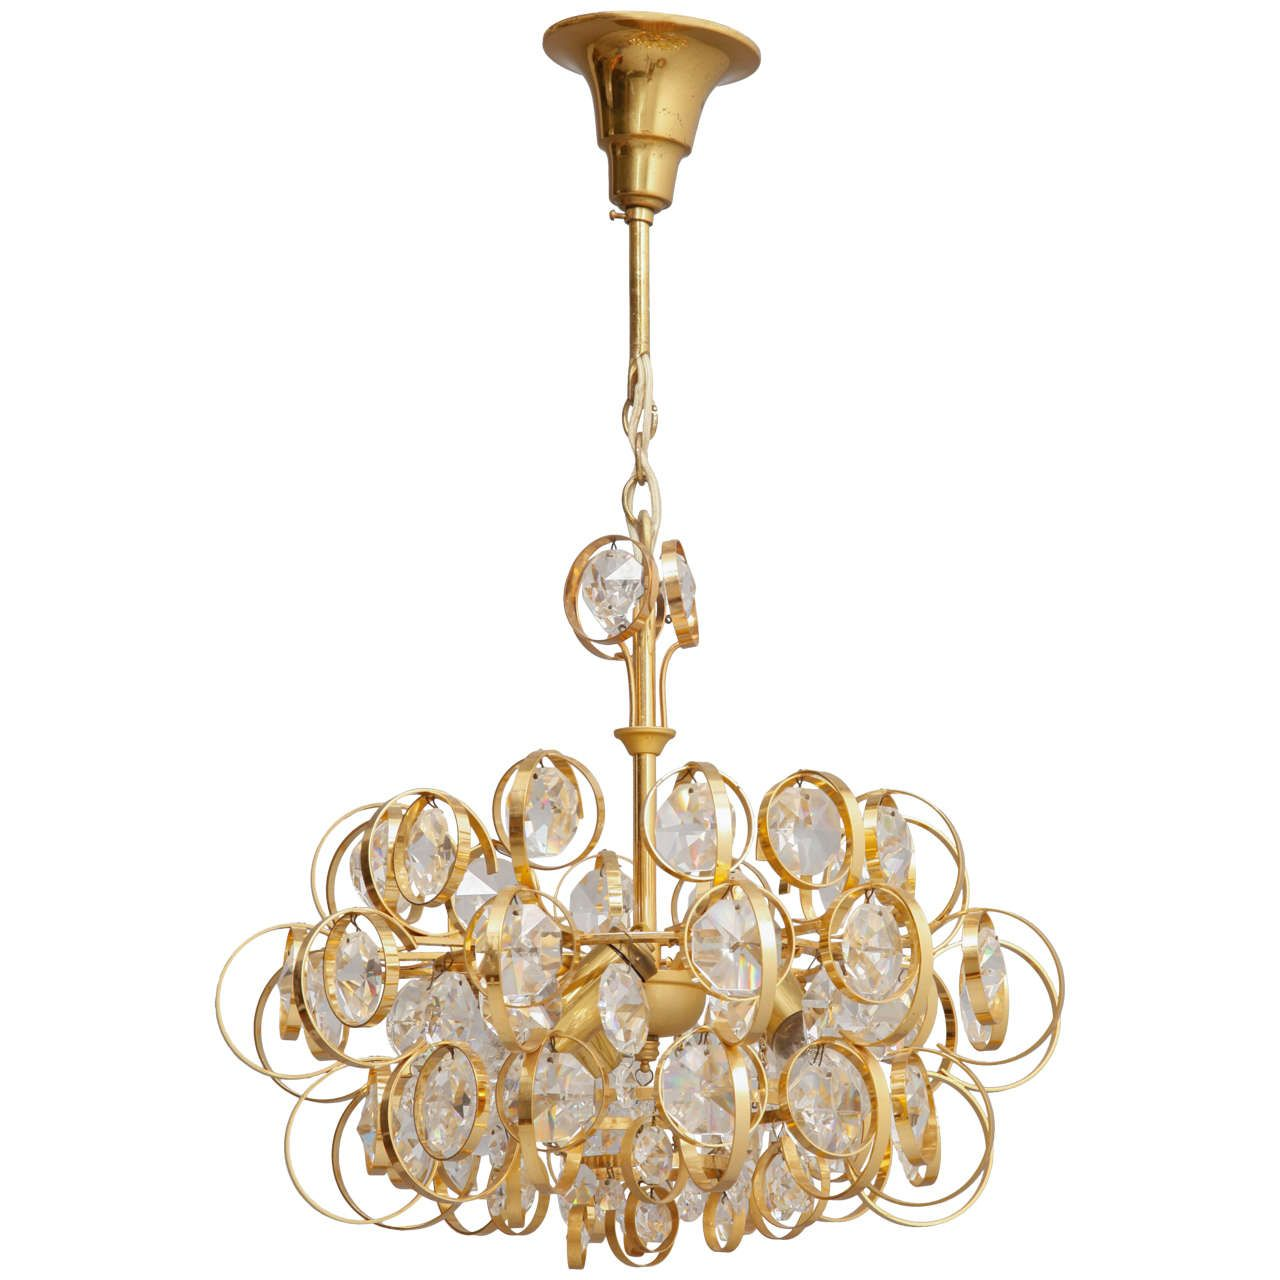 Palwa jewellike chandelier modern chandelier antiques and furniture